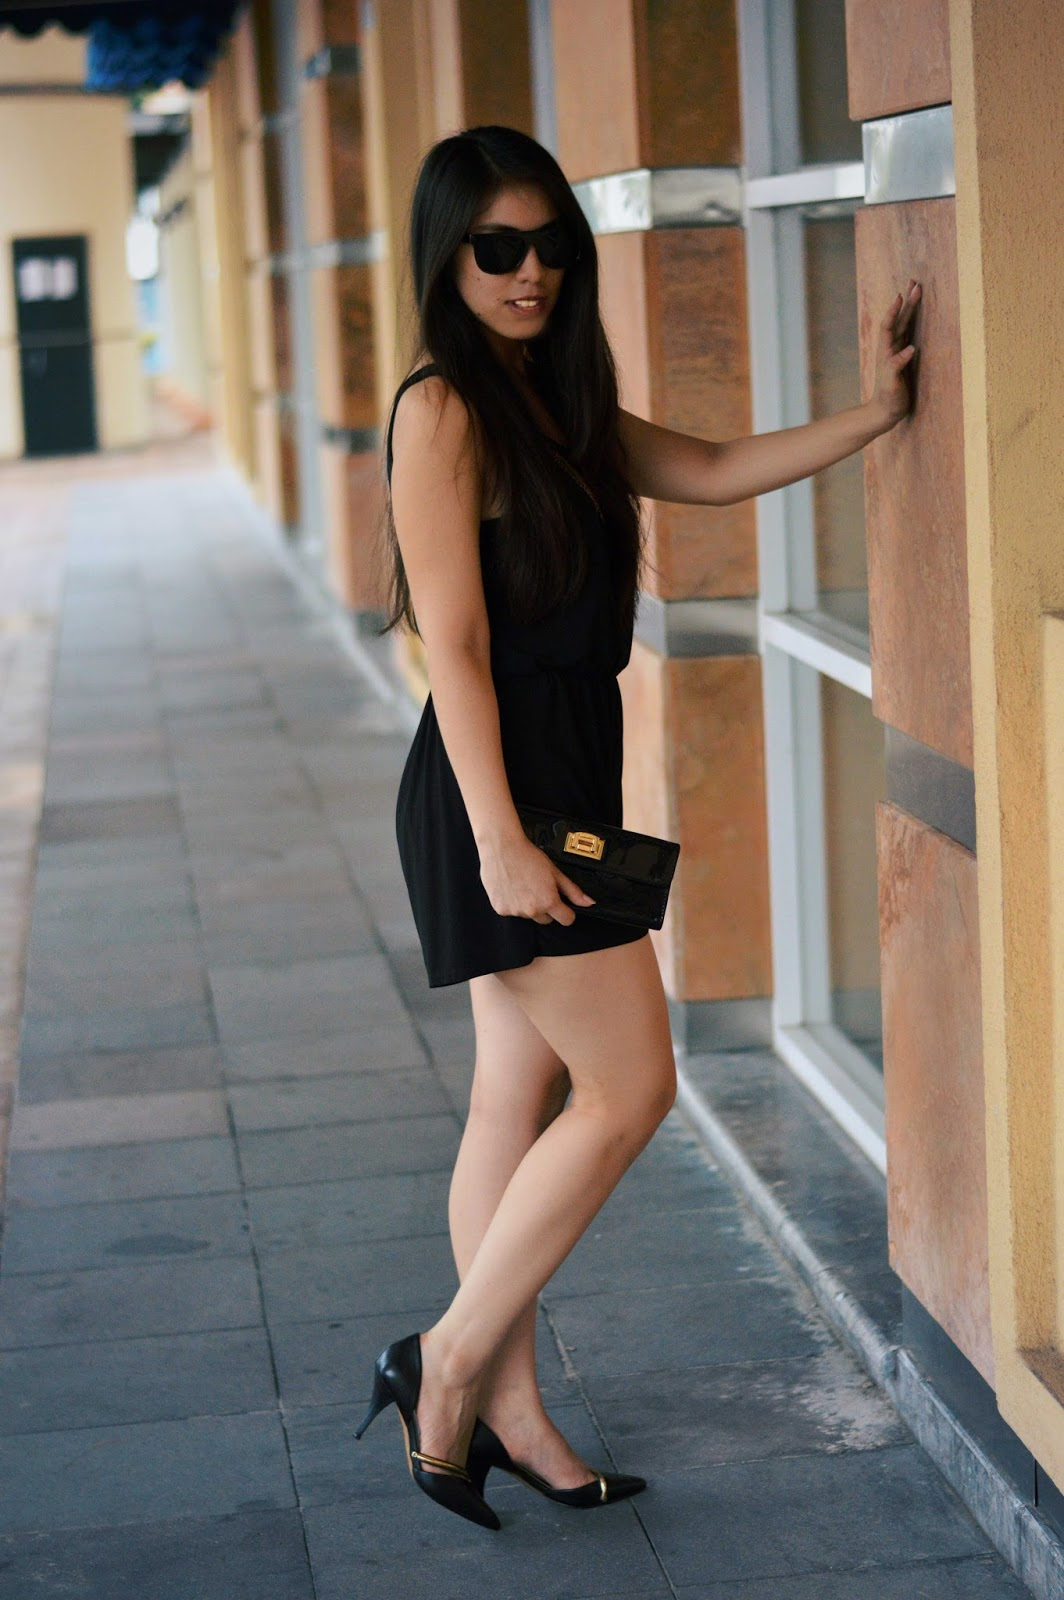 silvia-armas-all-in-one-black-romper-latina-fashion-blogger-ecuador